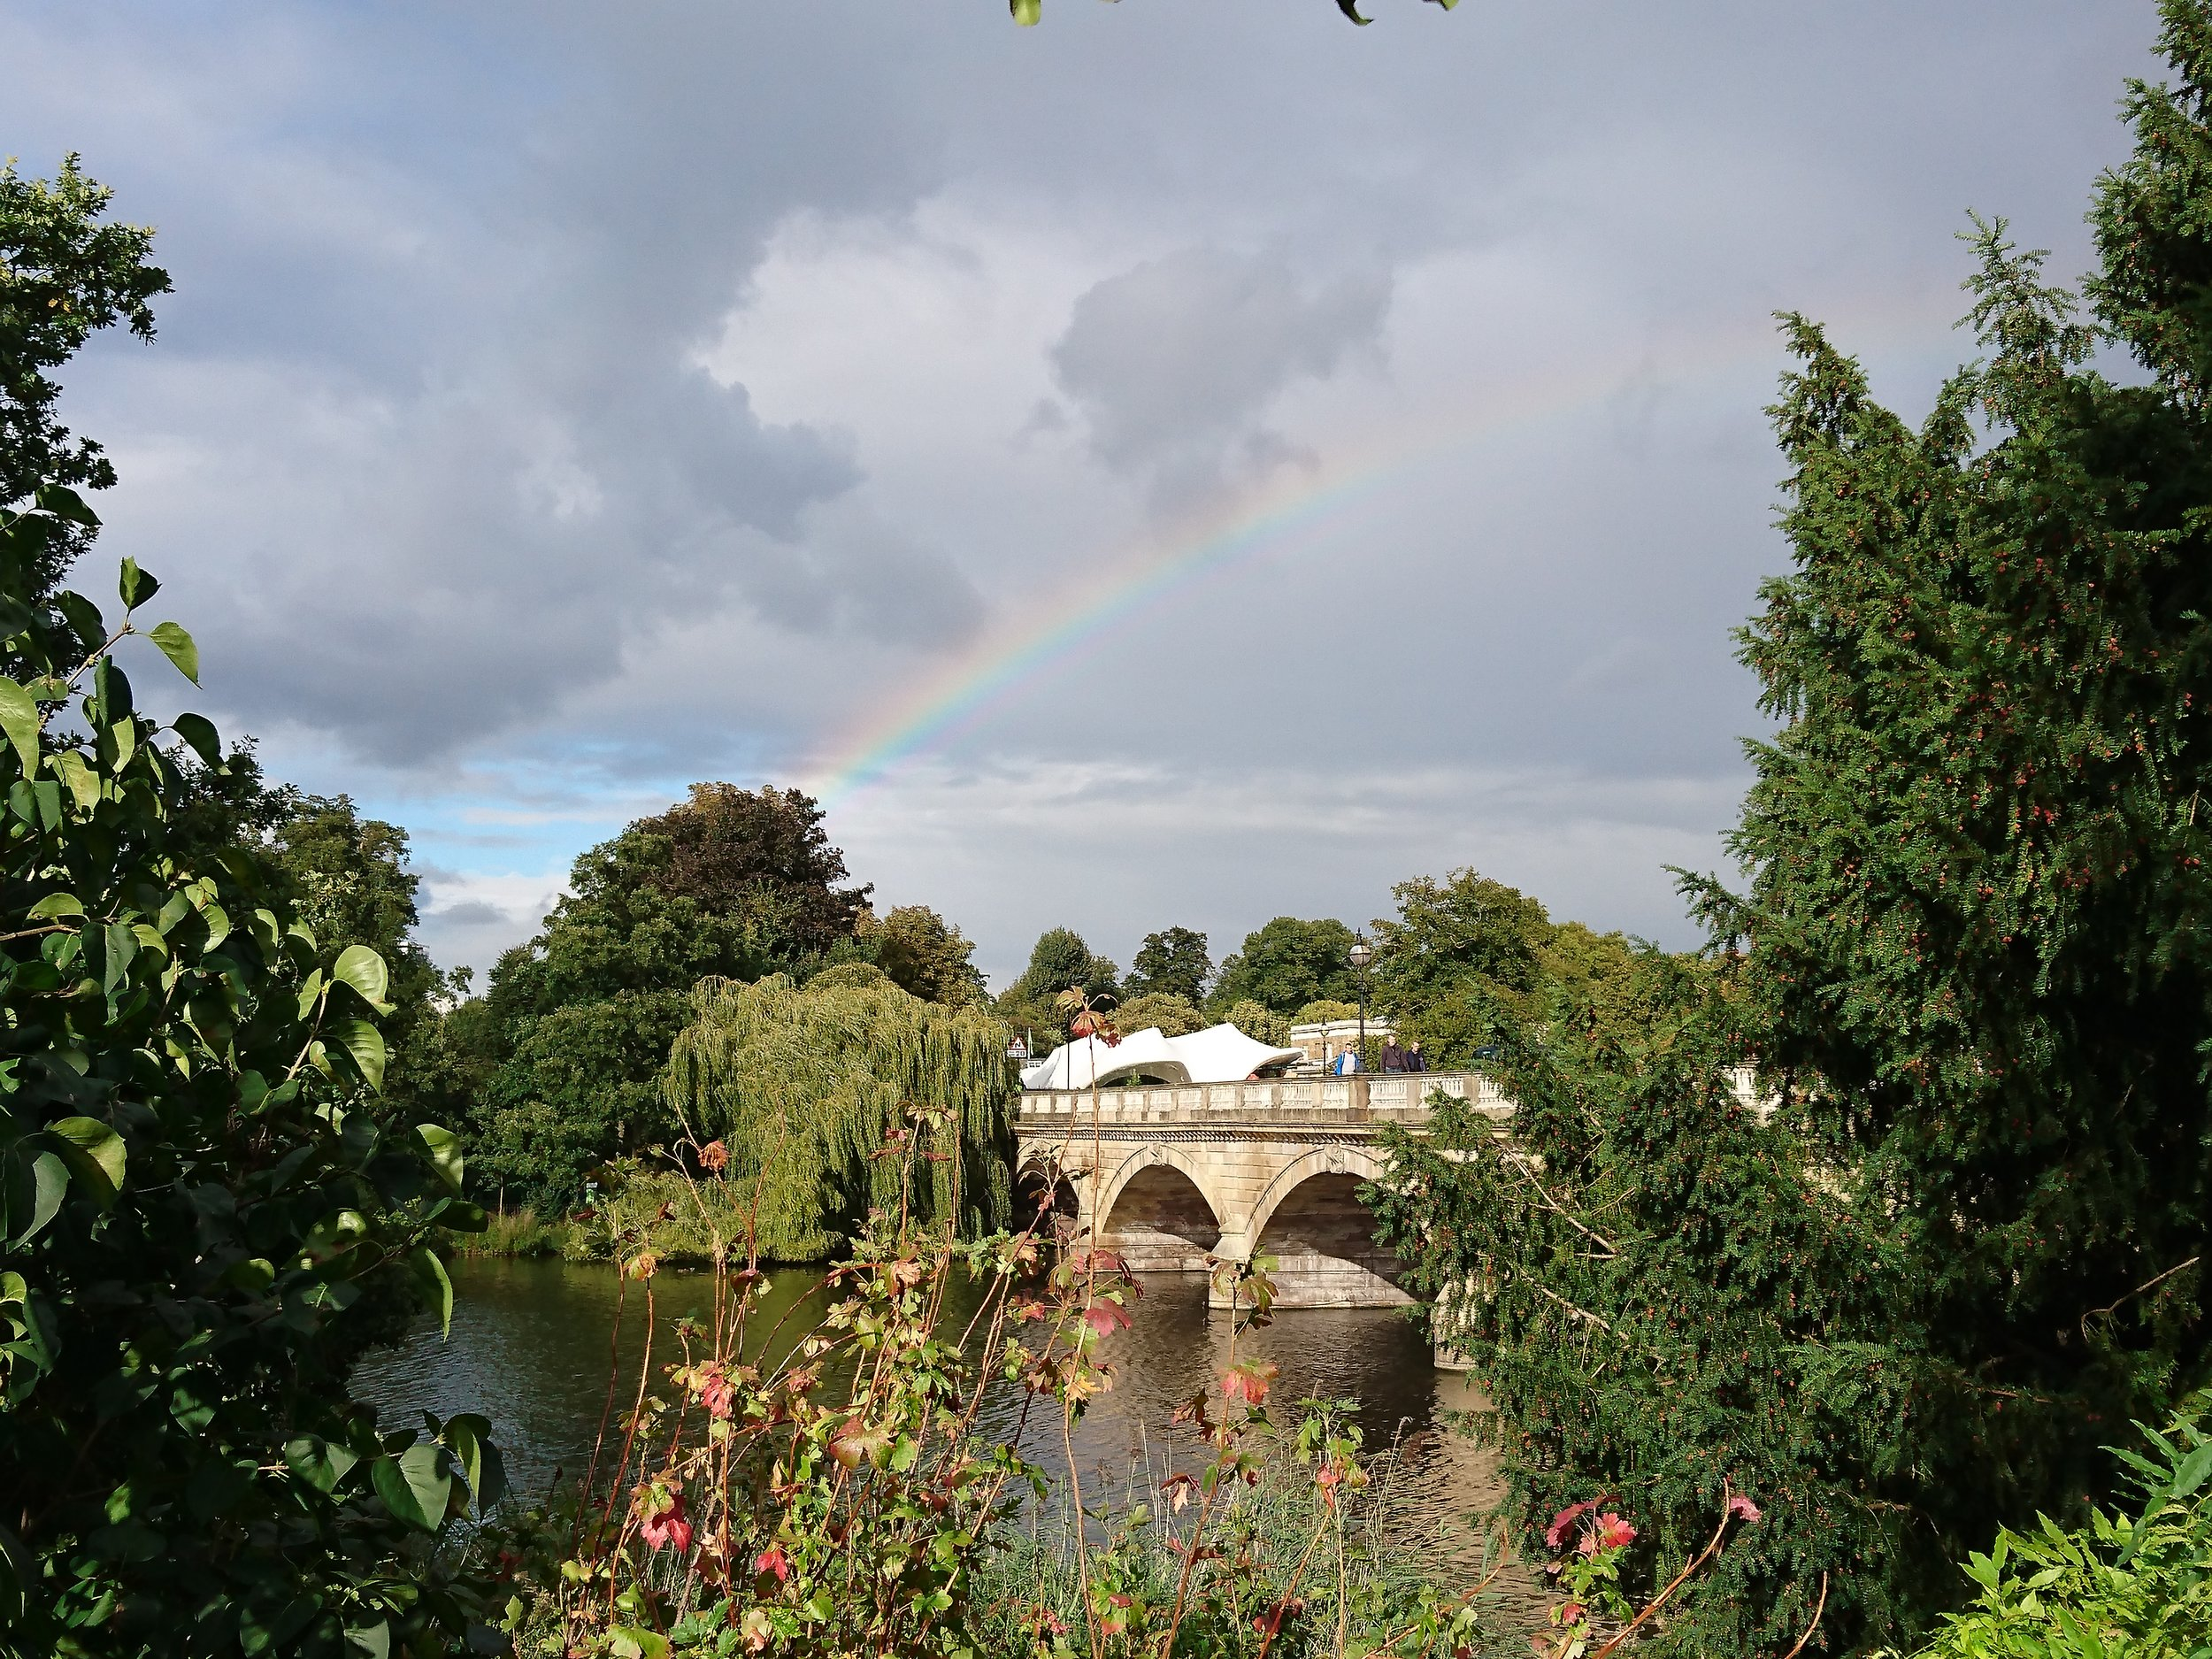 Rainbow over serpentine